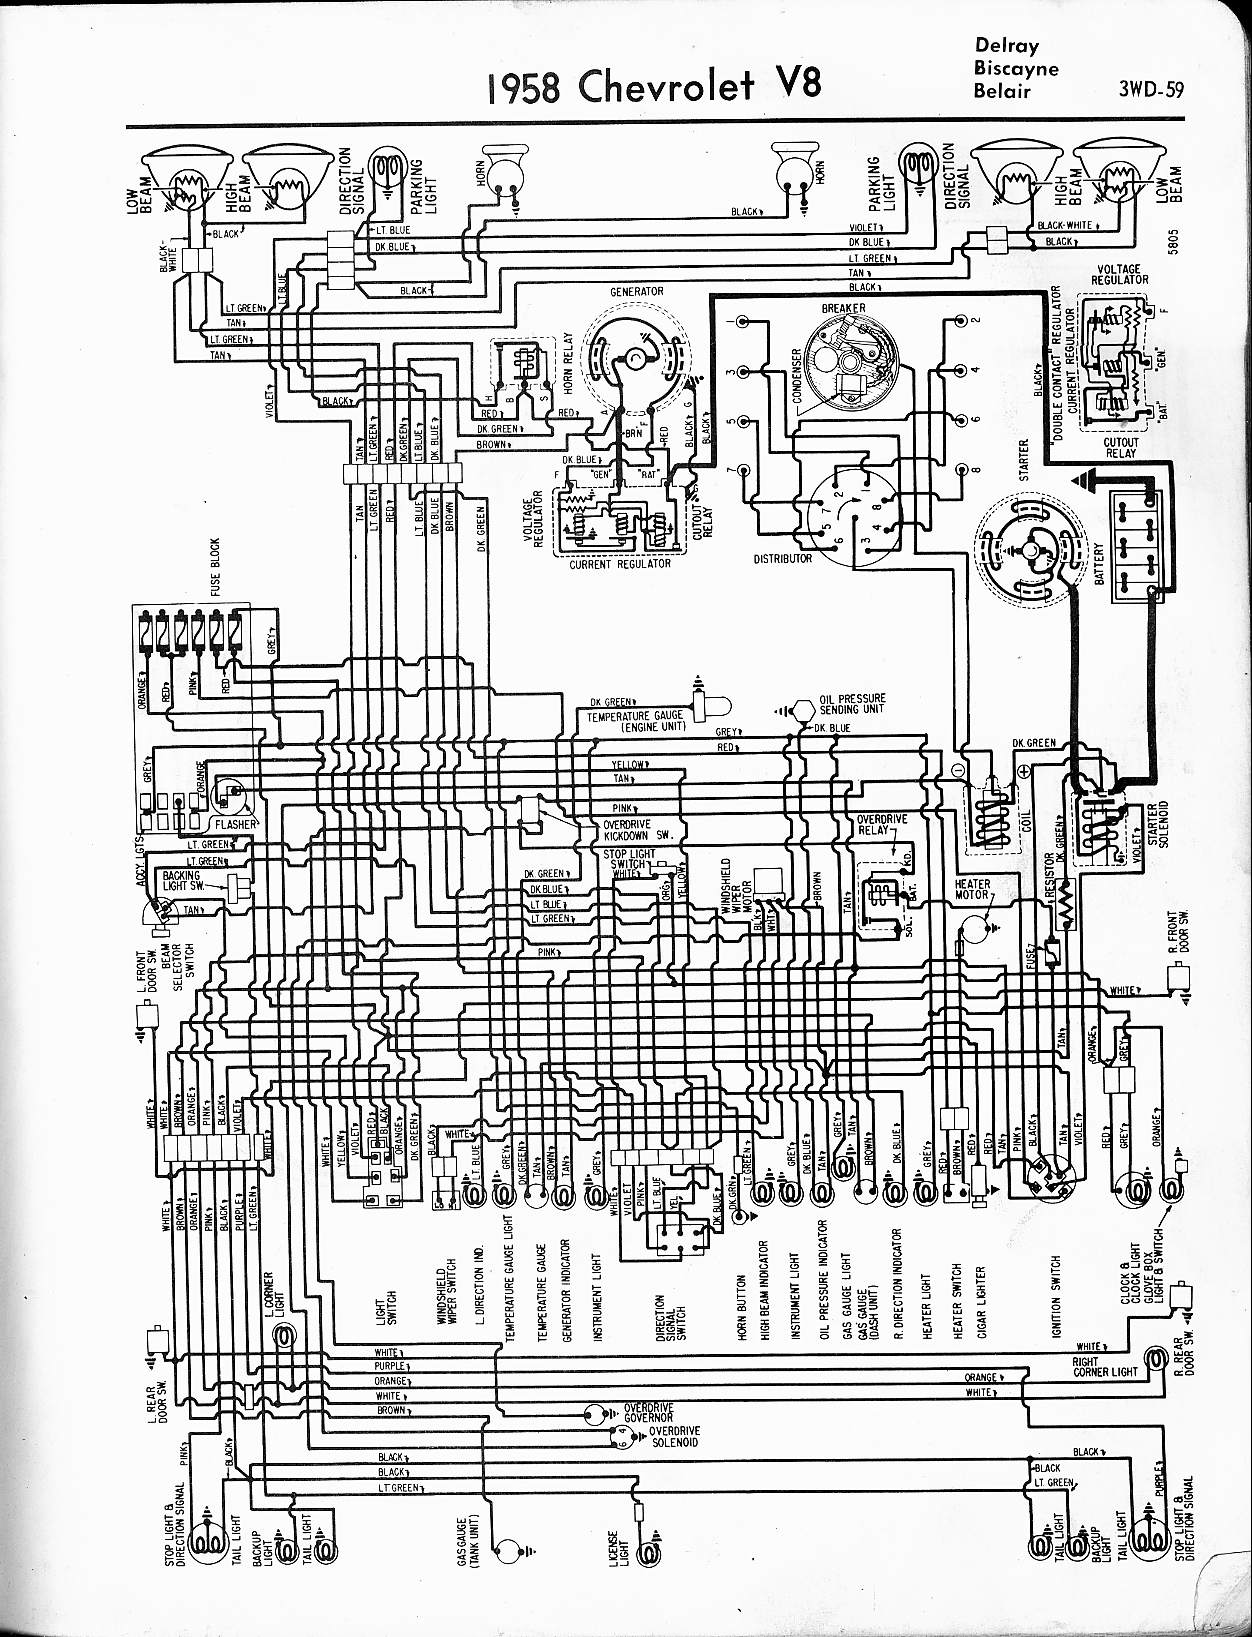 Incredible 57 65 Chevy Wiring Diagrams Wiring Digital Resources Millslowmaporg